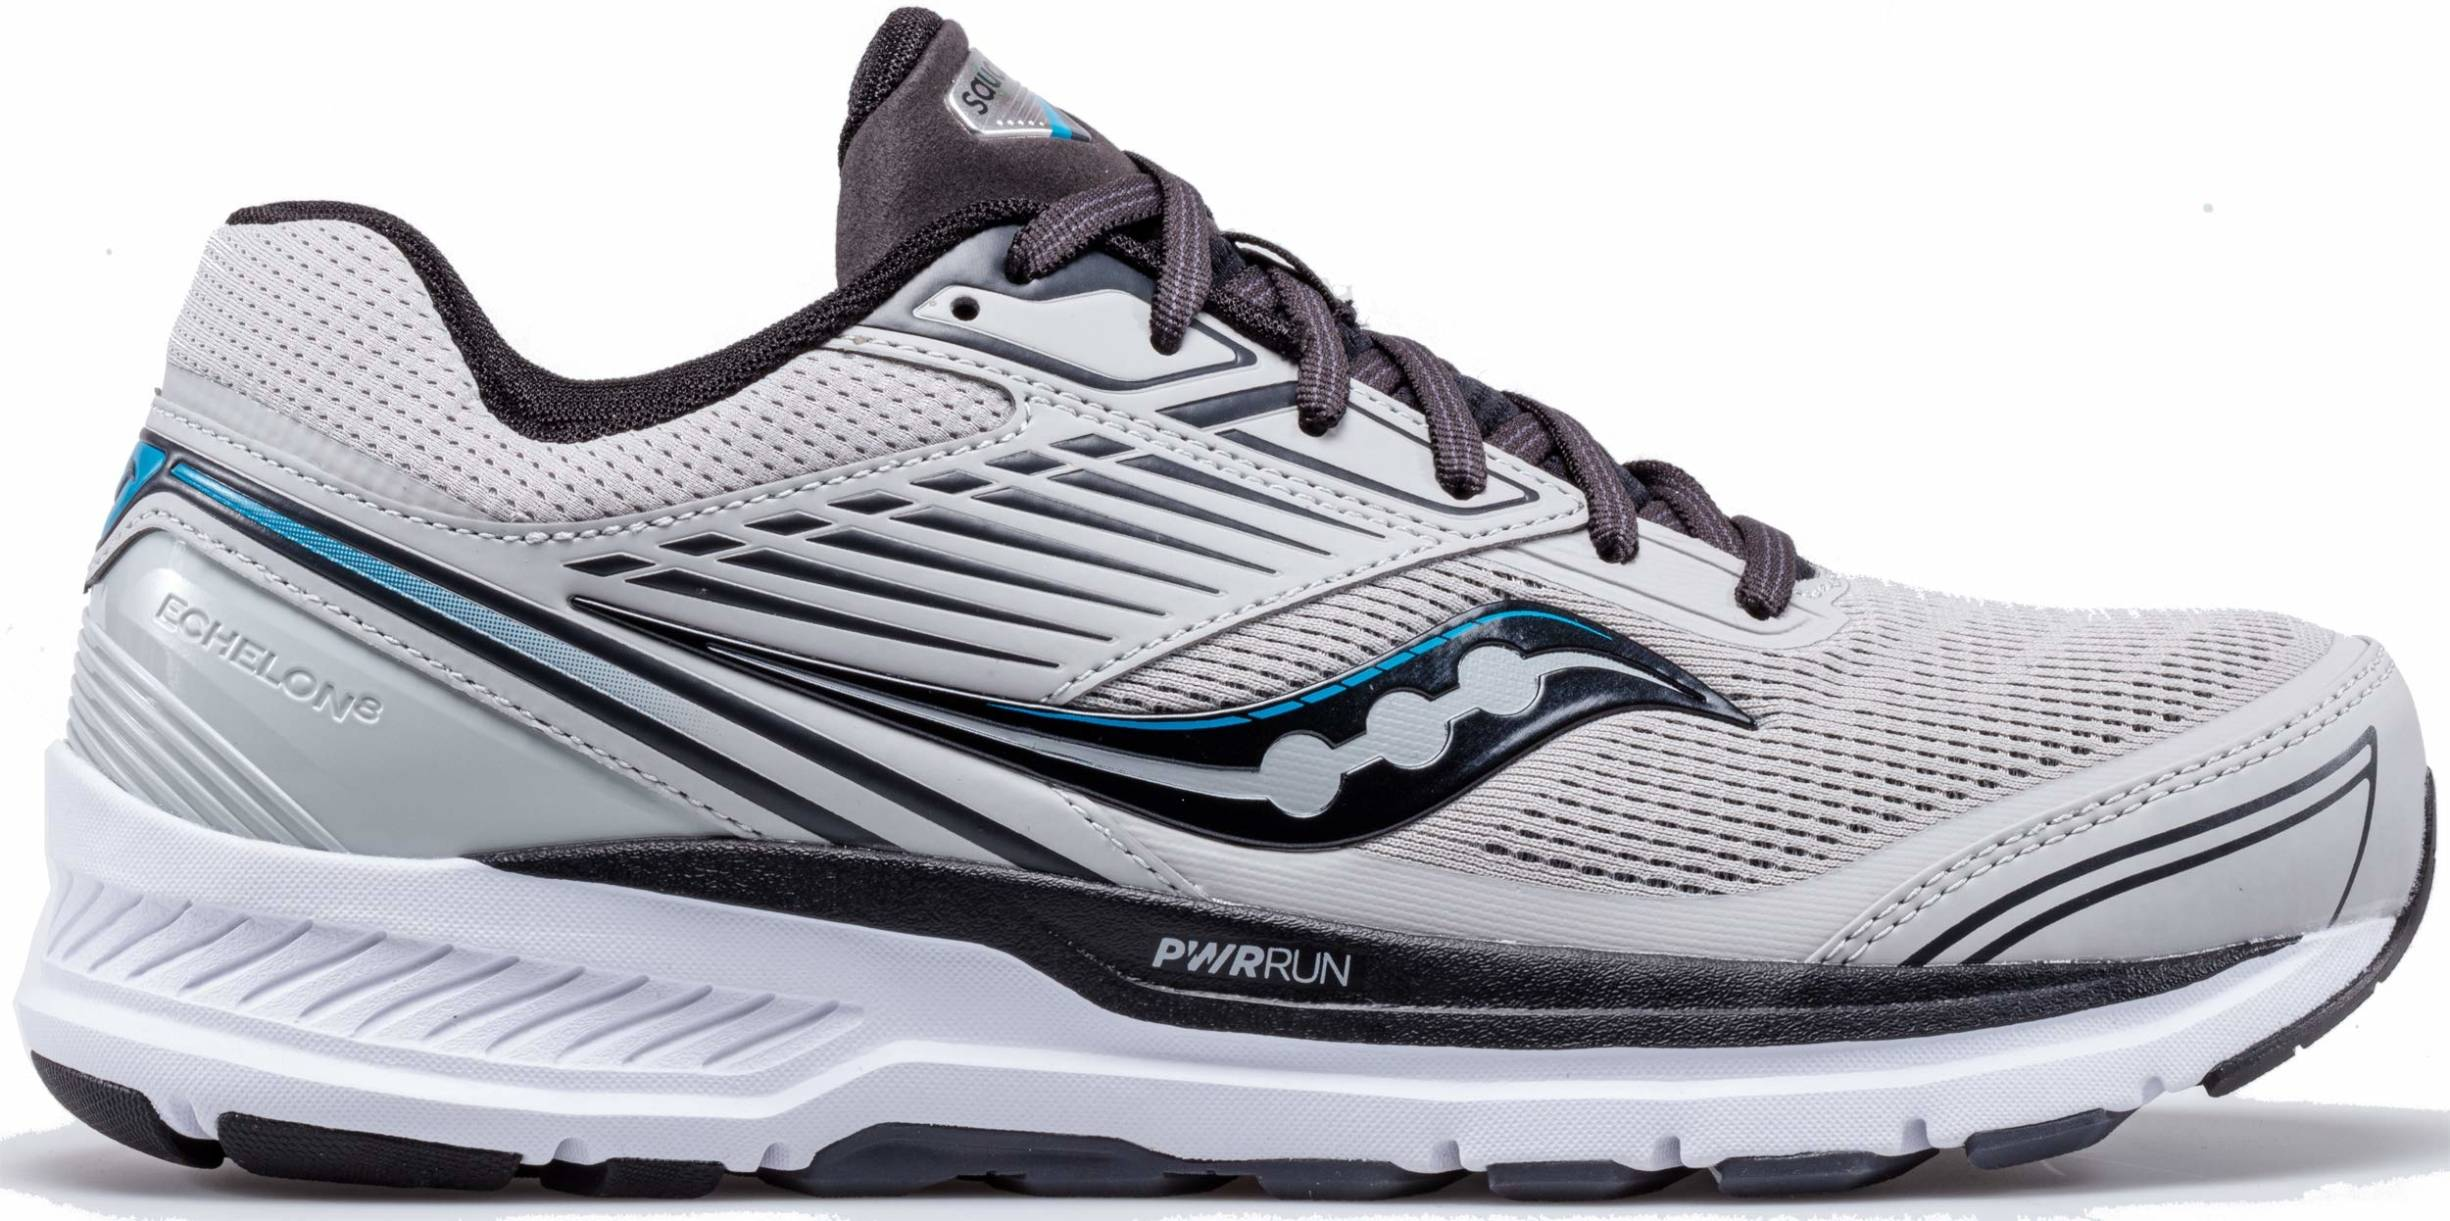 Only $104 + Review of Saucony Echelon 8